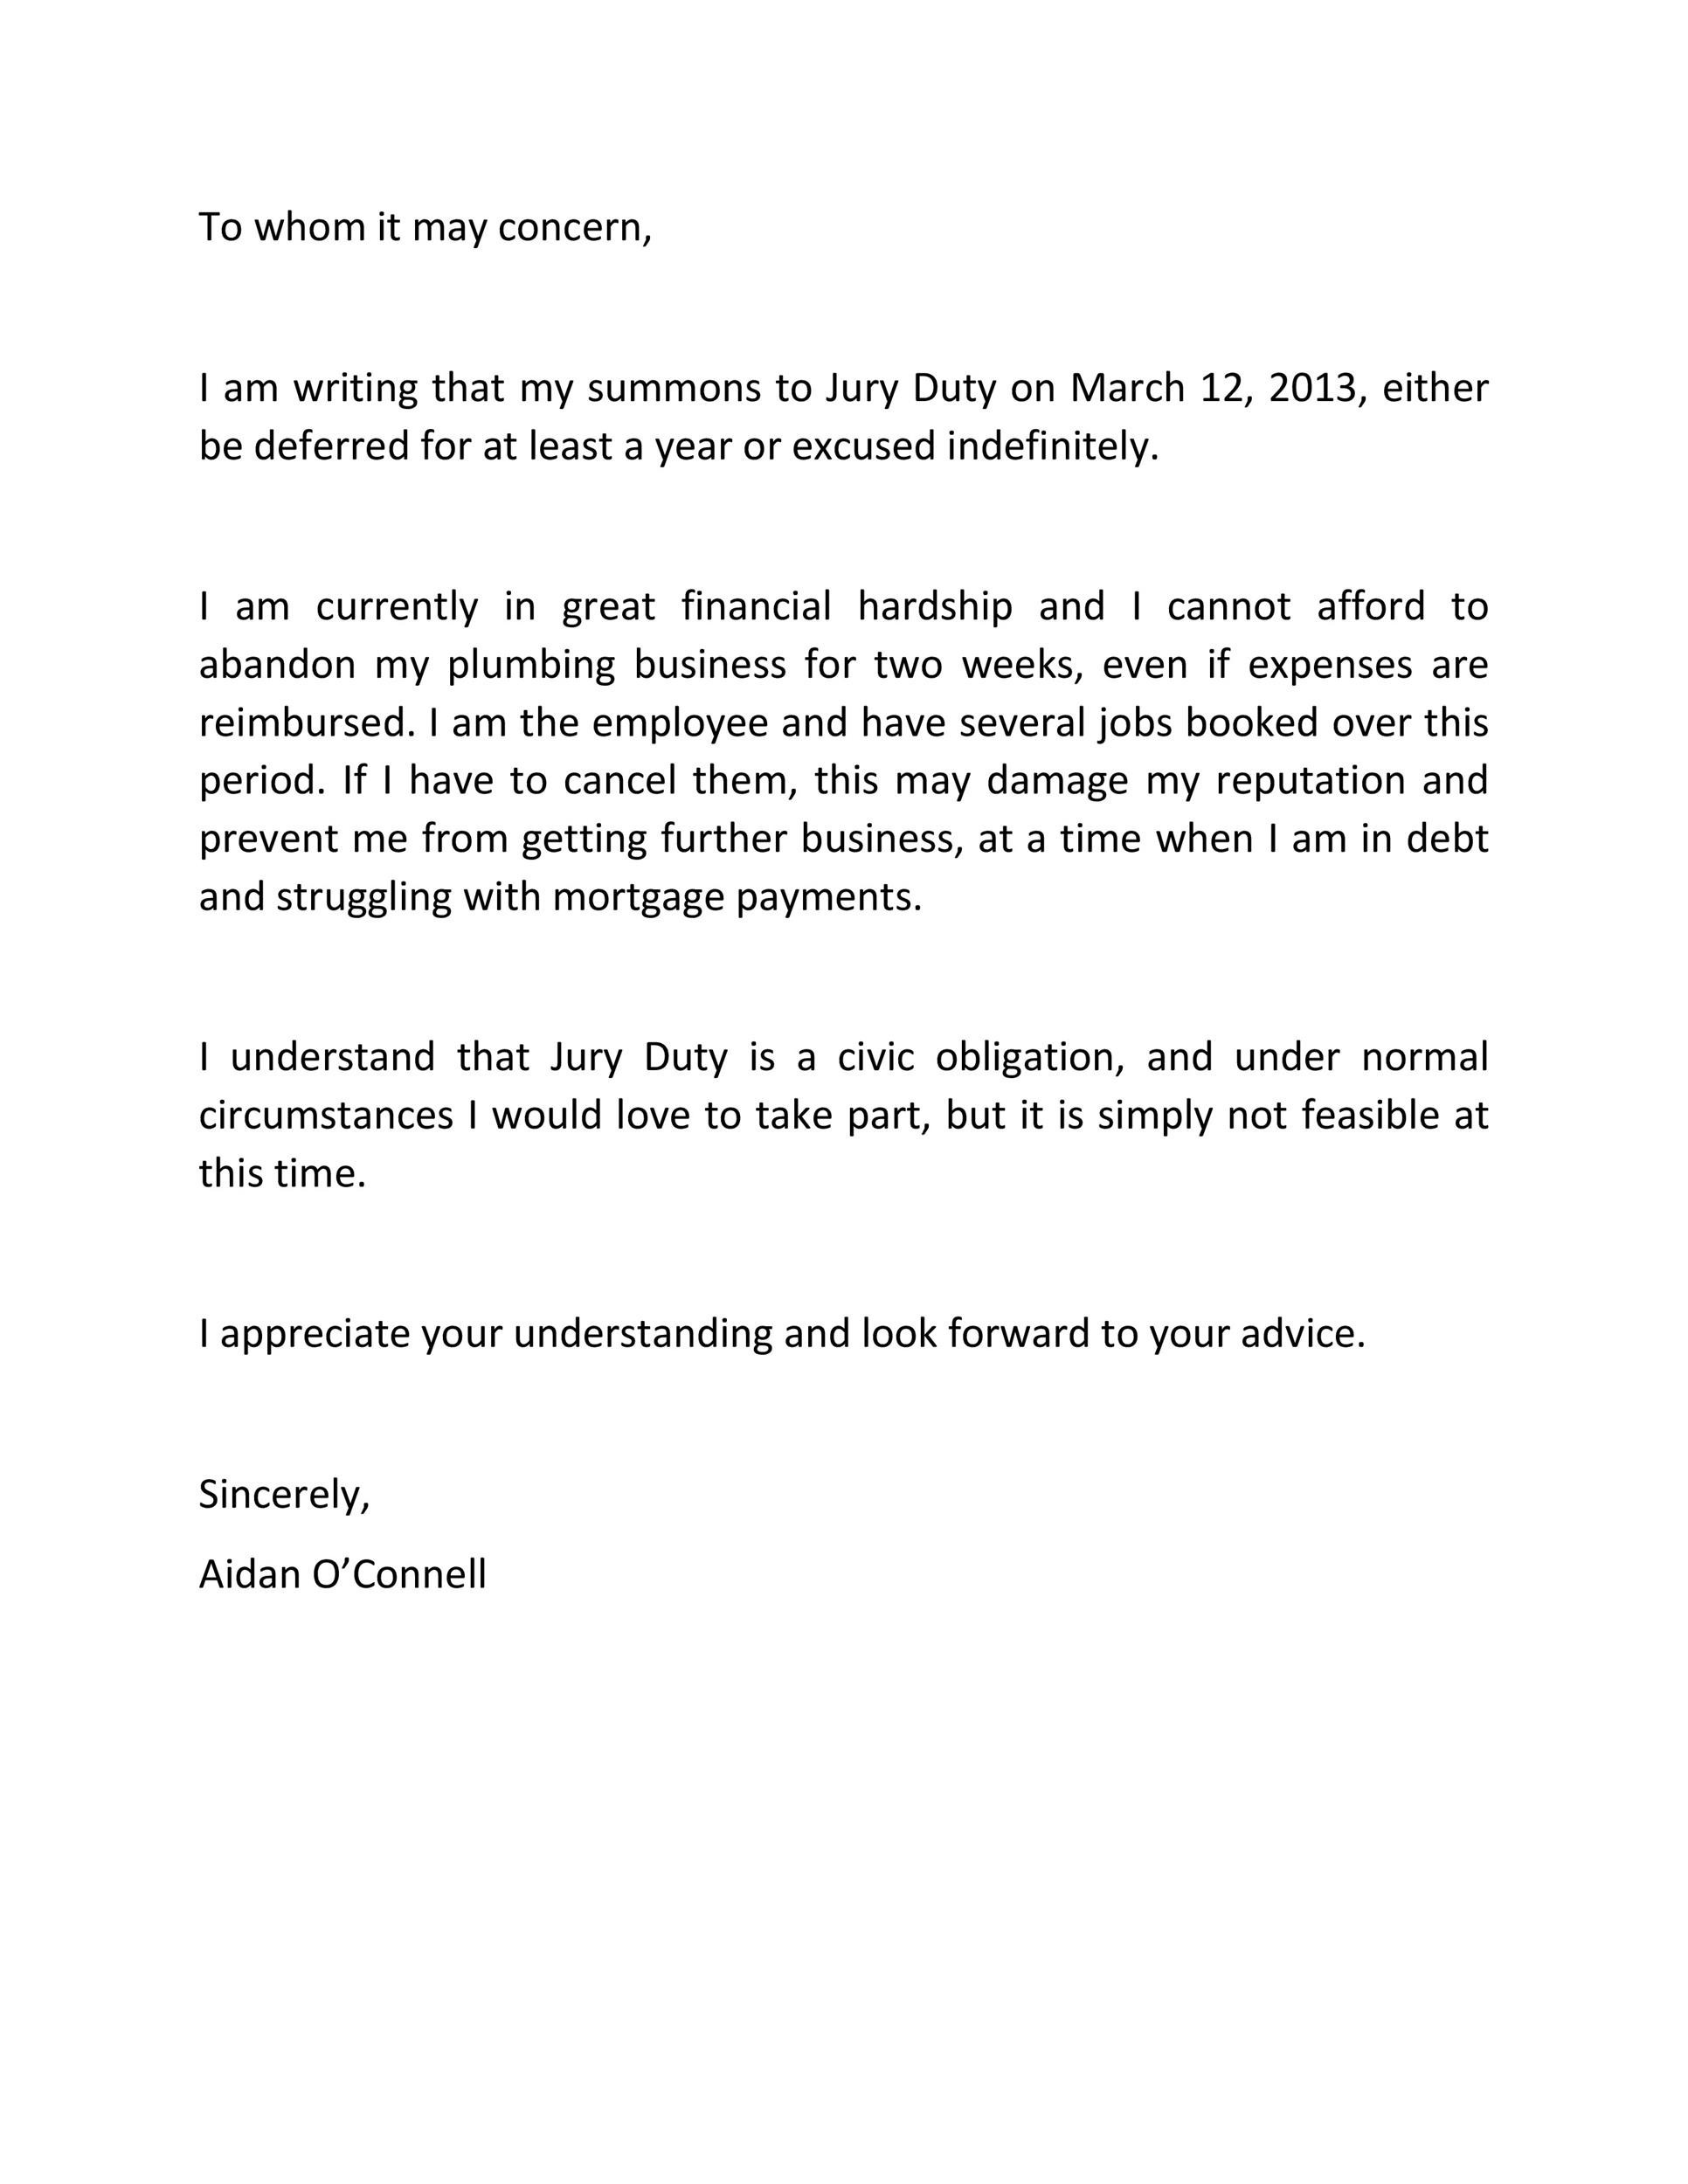 Free jury duty excuse letter template 26